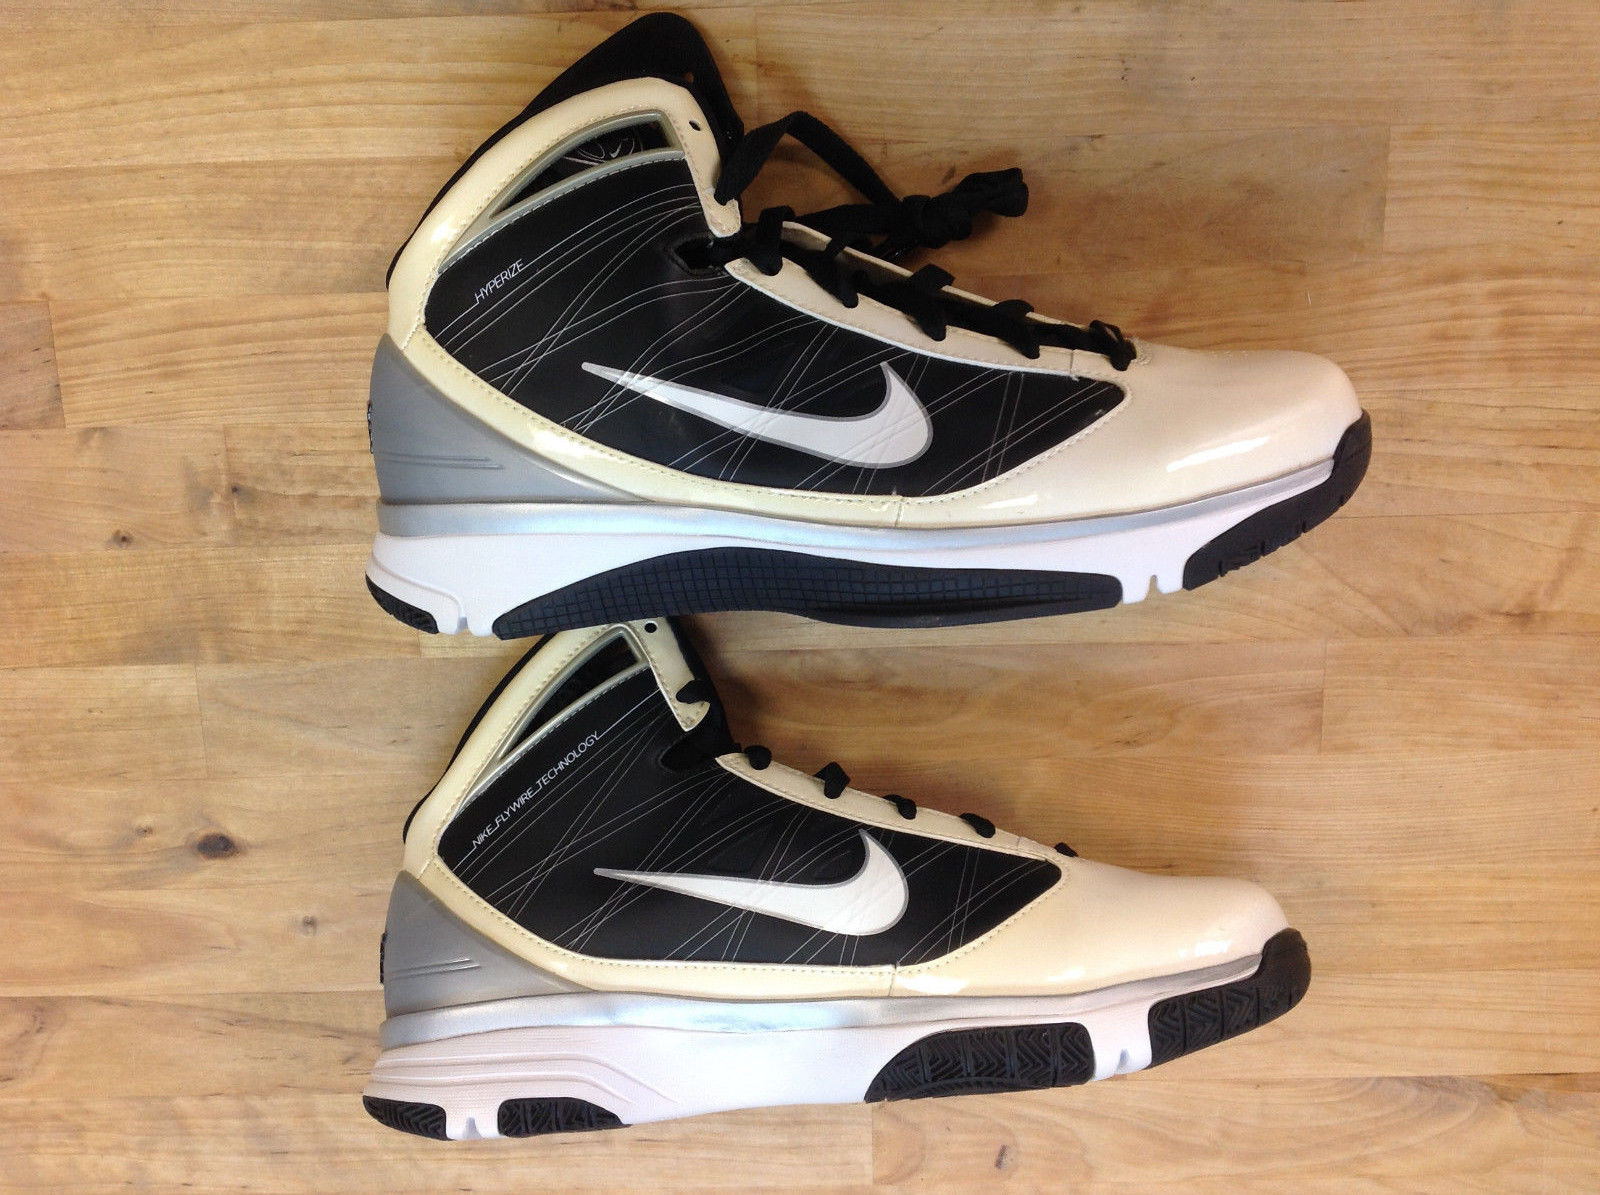 Primary image for NIKE 367193 111 Women's Hyperize Black/White/Silver Shoes, Size US 11.5, EUR 44